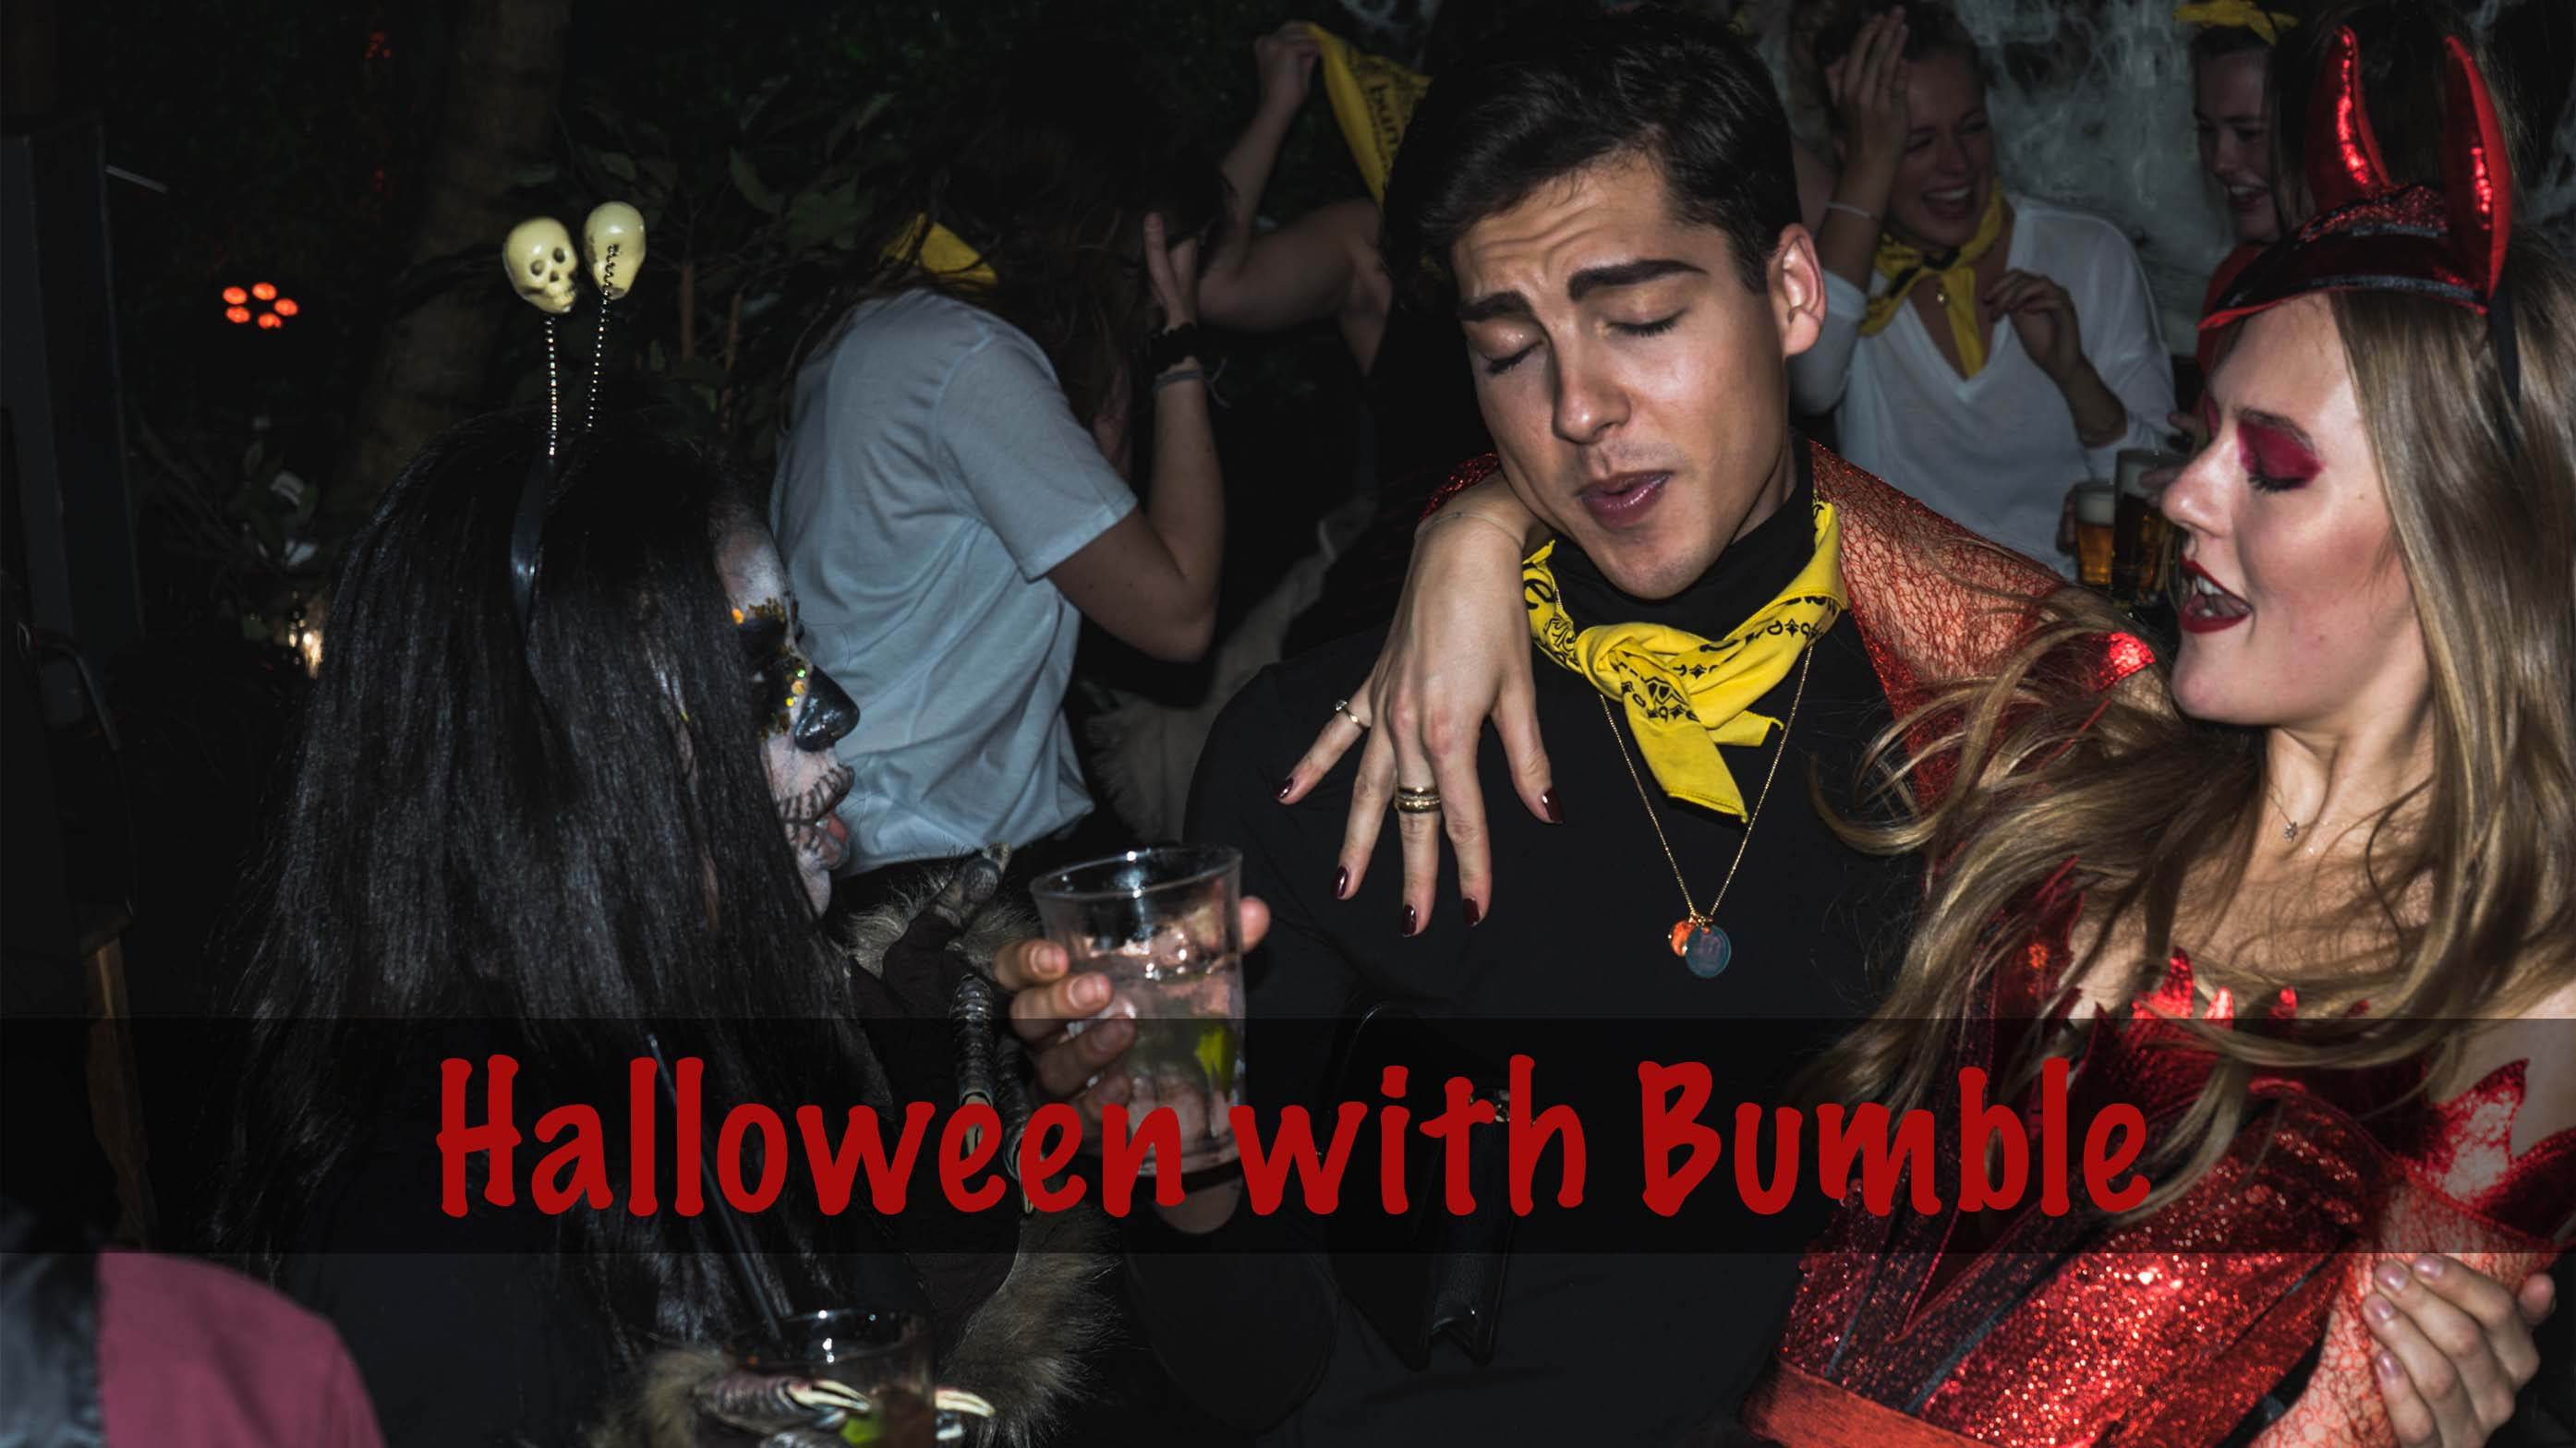 HALLOWEEN PARTY WITH BUMBLE